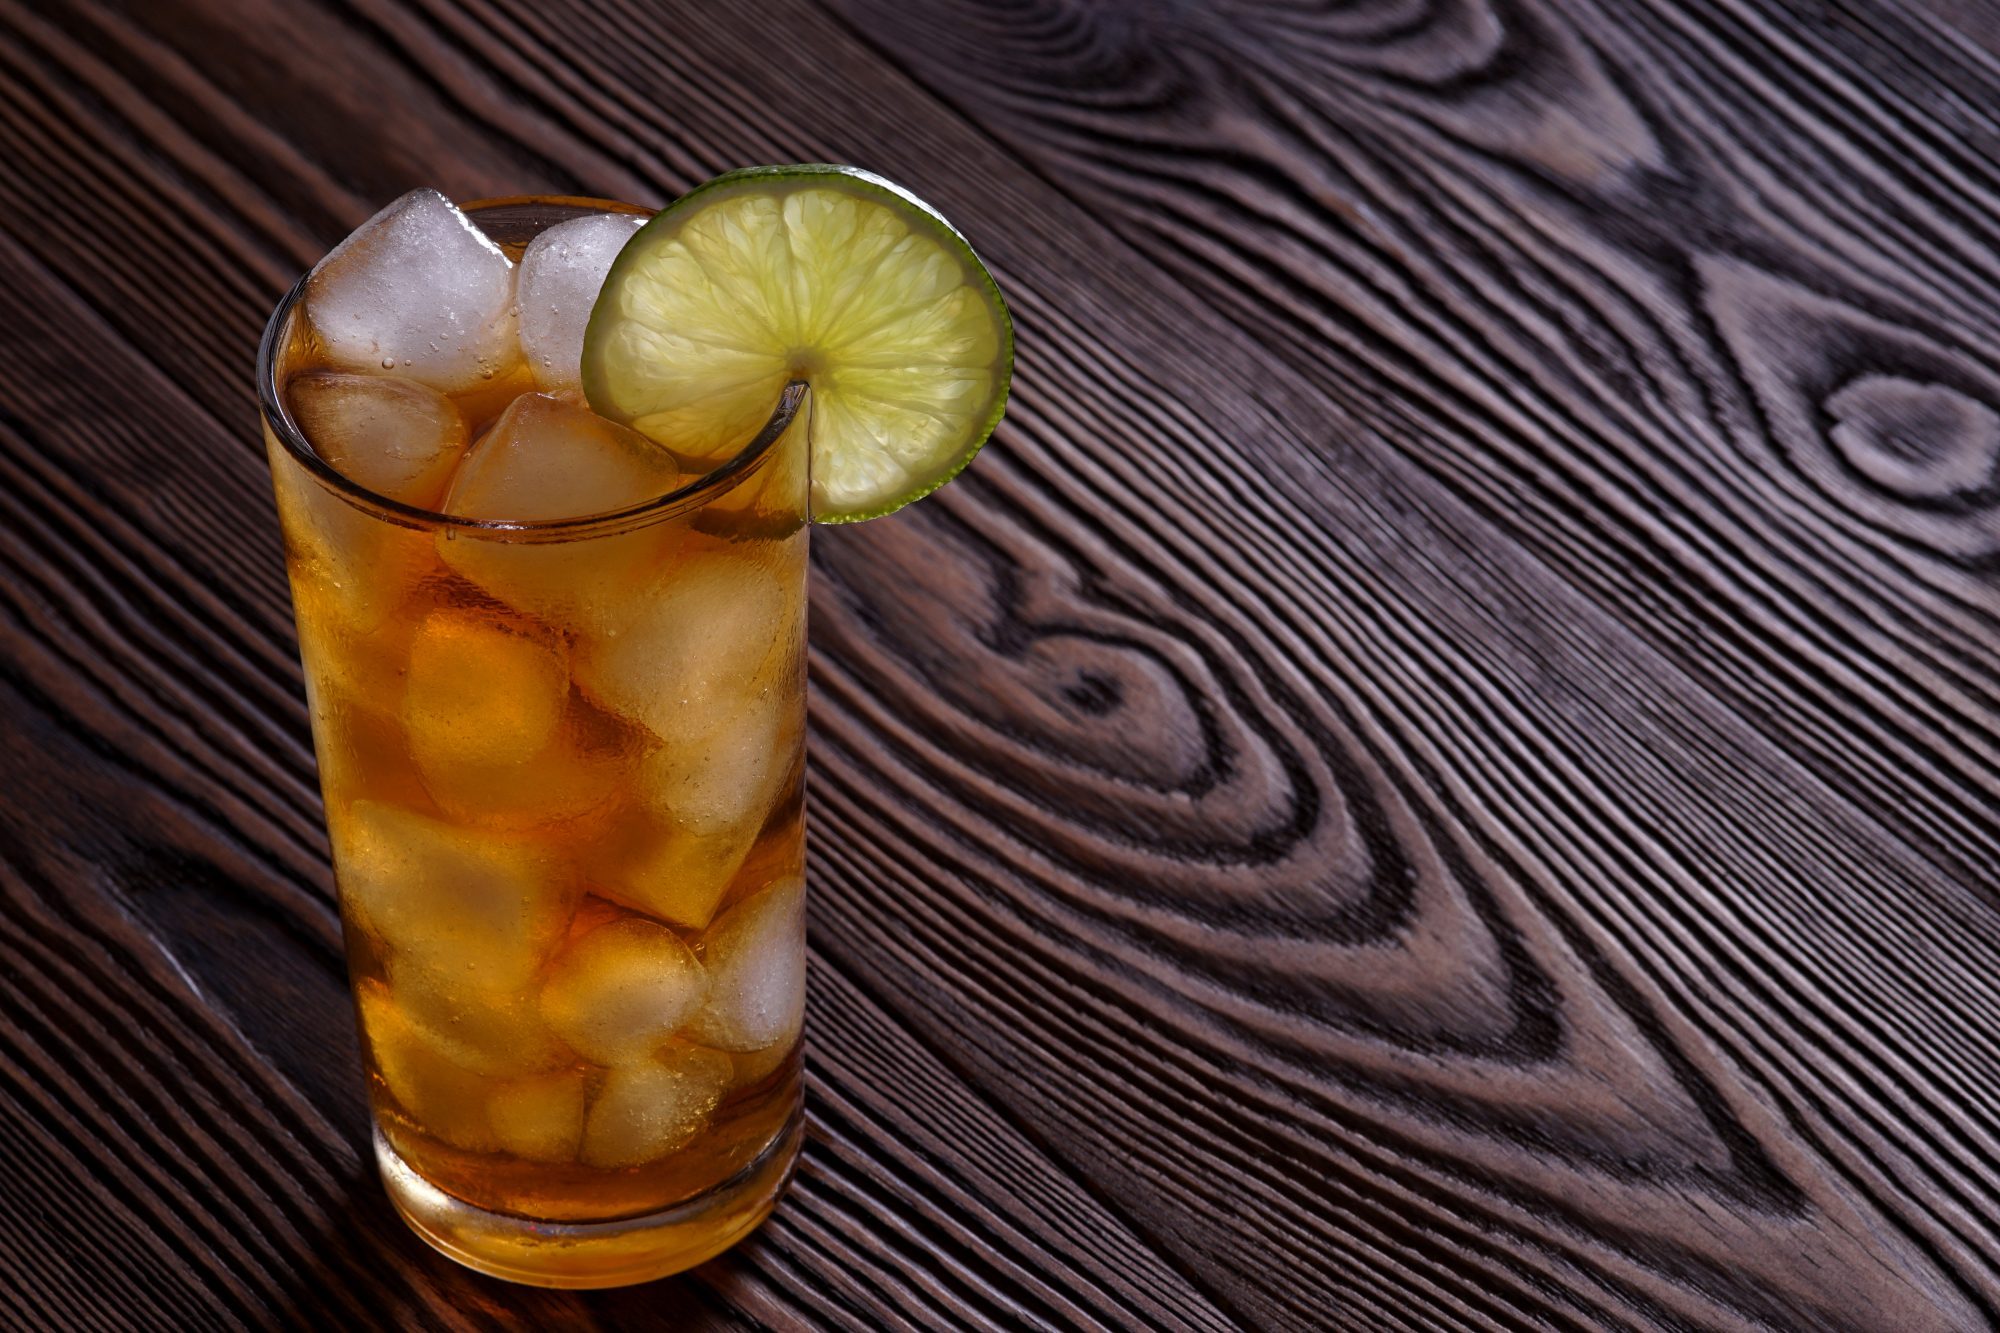 Battle of the Long Island Iced Tea